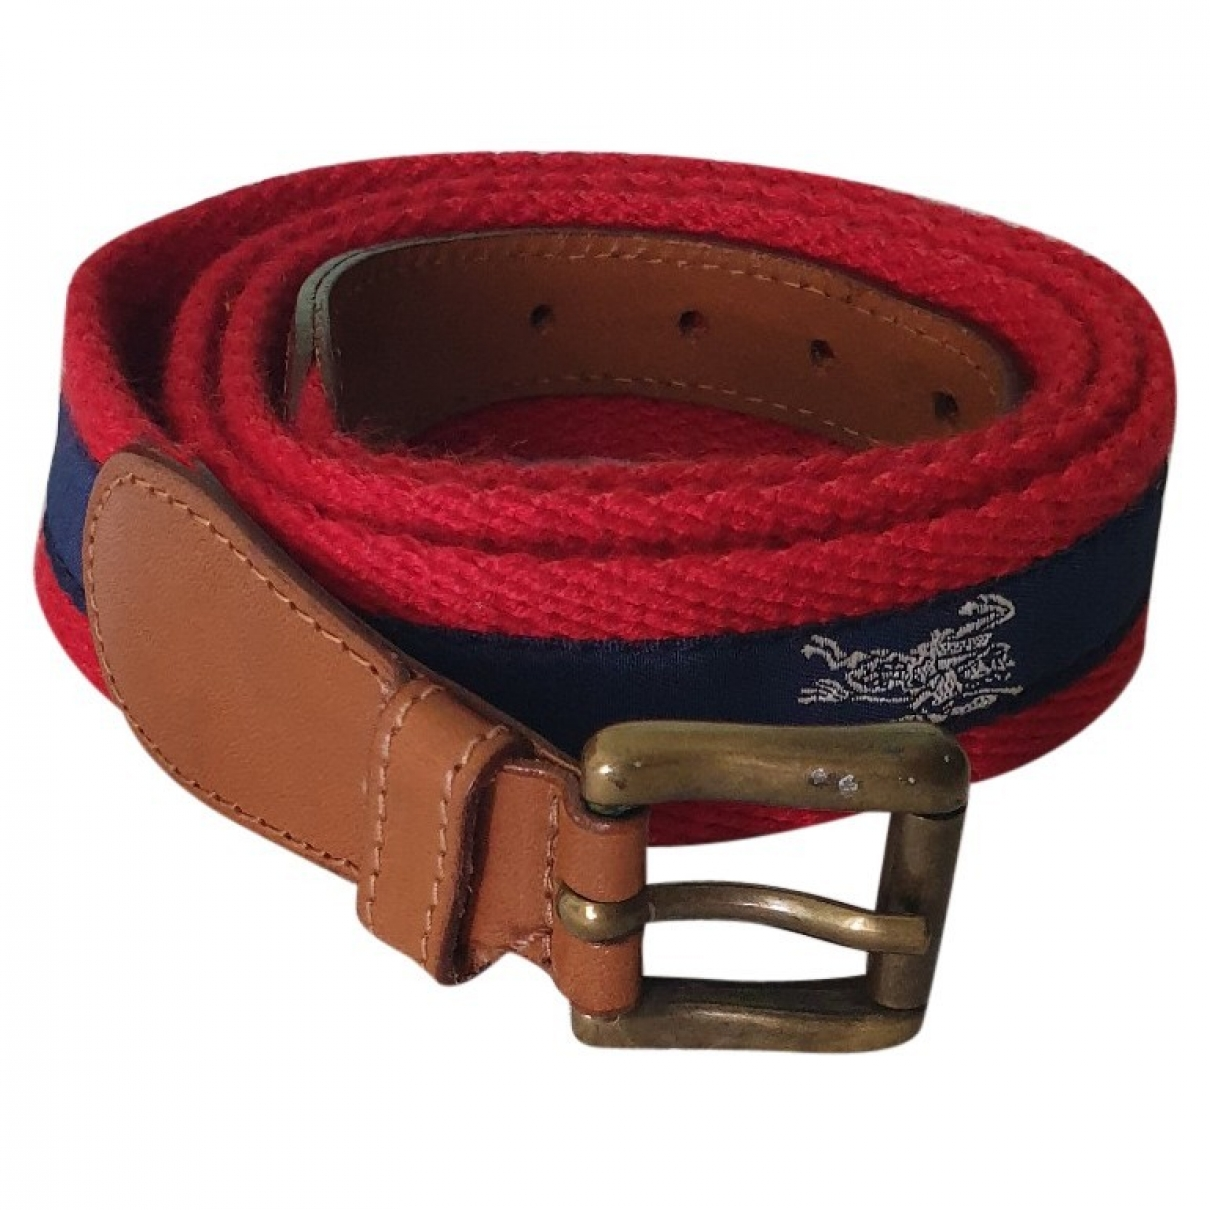 Burberry \N Cloth belt for Women M International